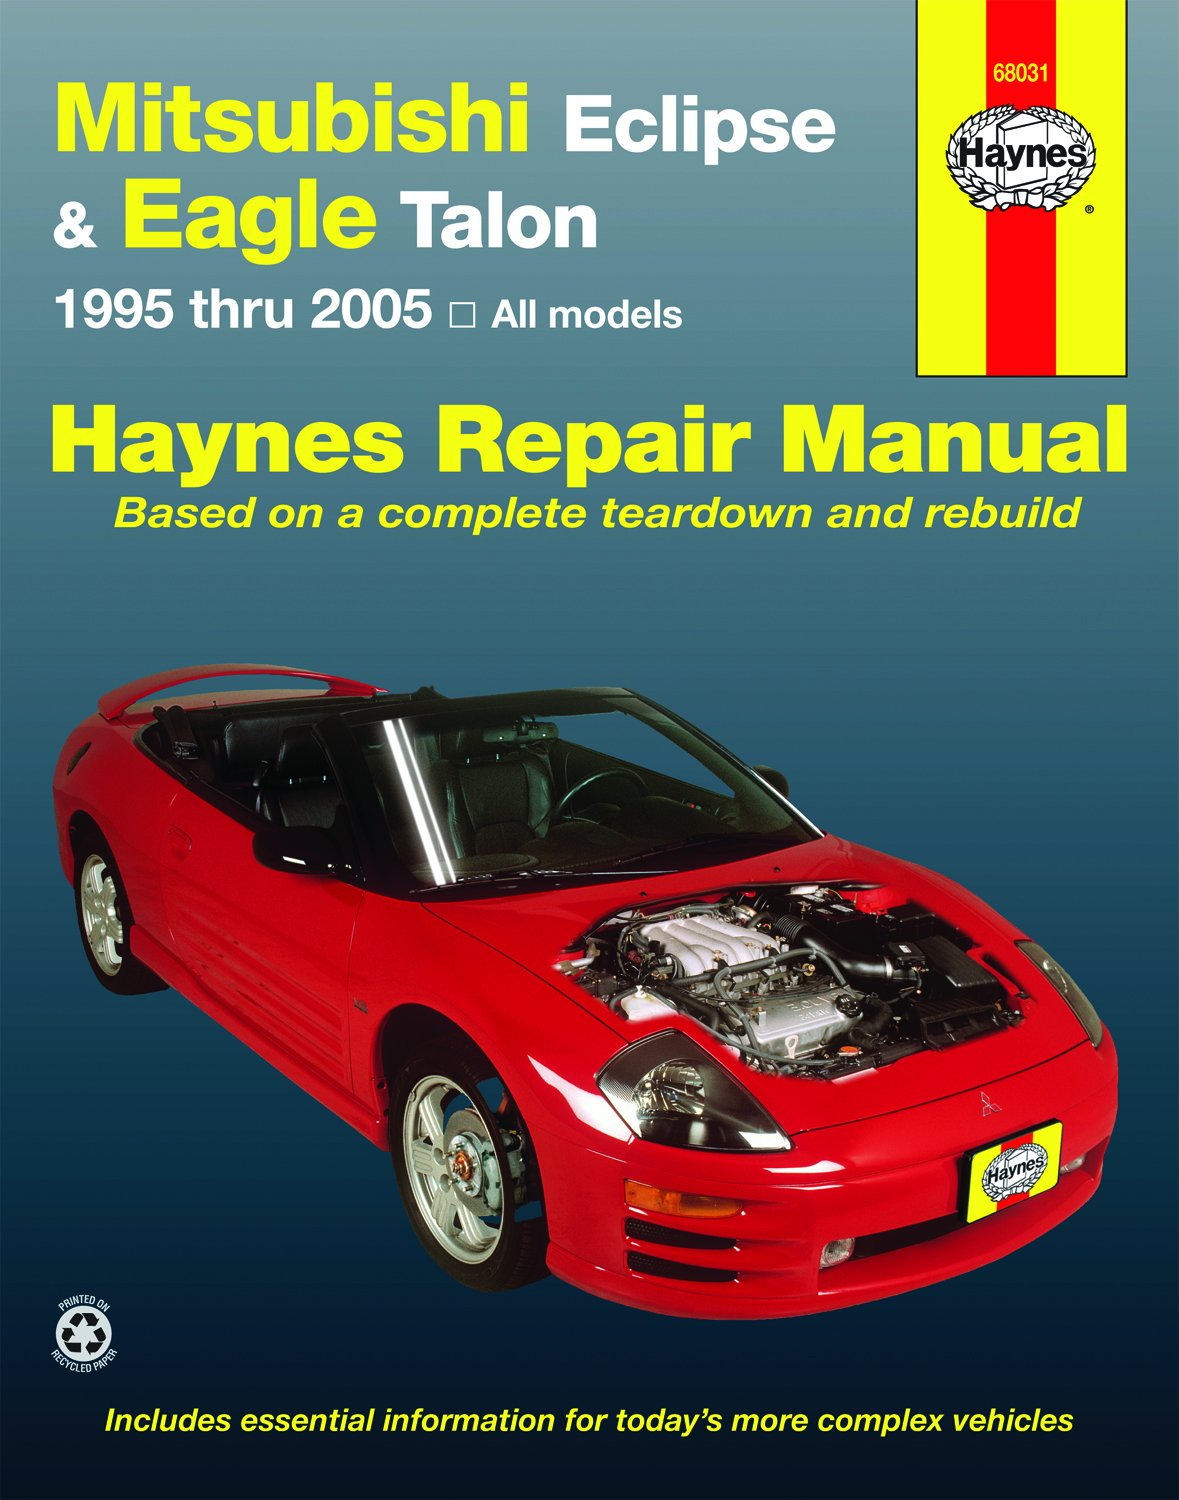 Amazon.com: Haynes Repair Manuals Mitsubishi Eclipse & Eagle Talon, 95-05  (68031): Automotive